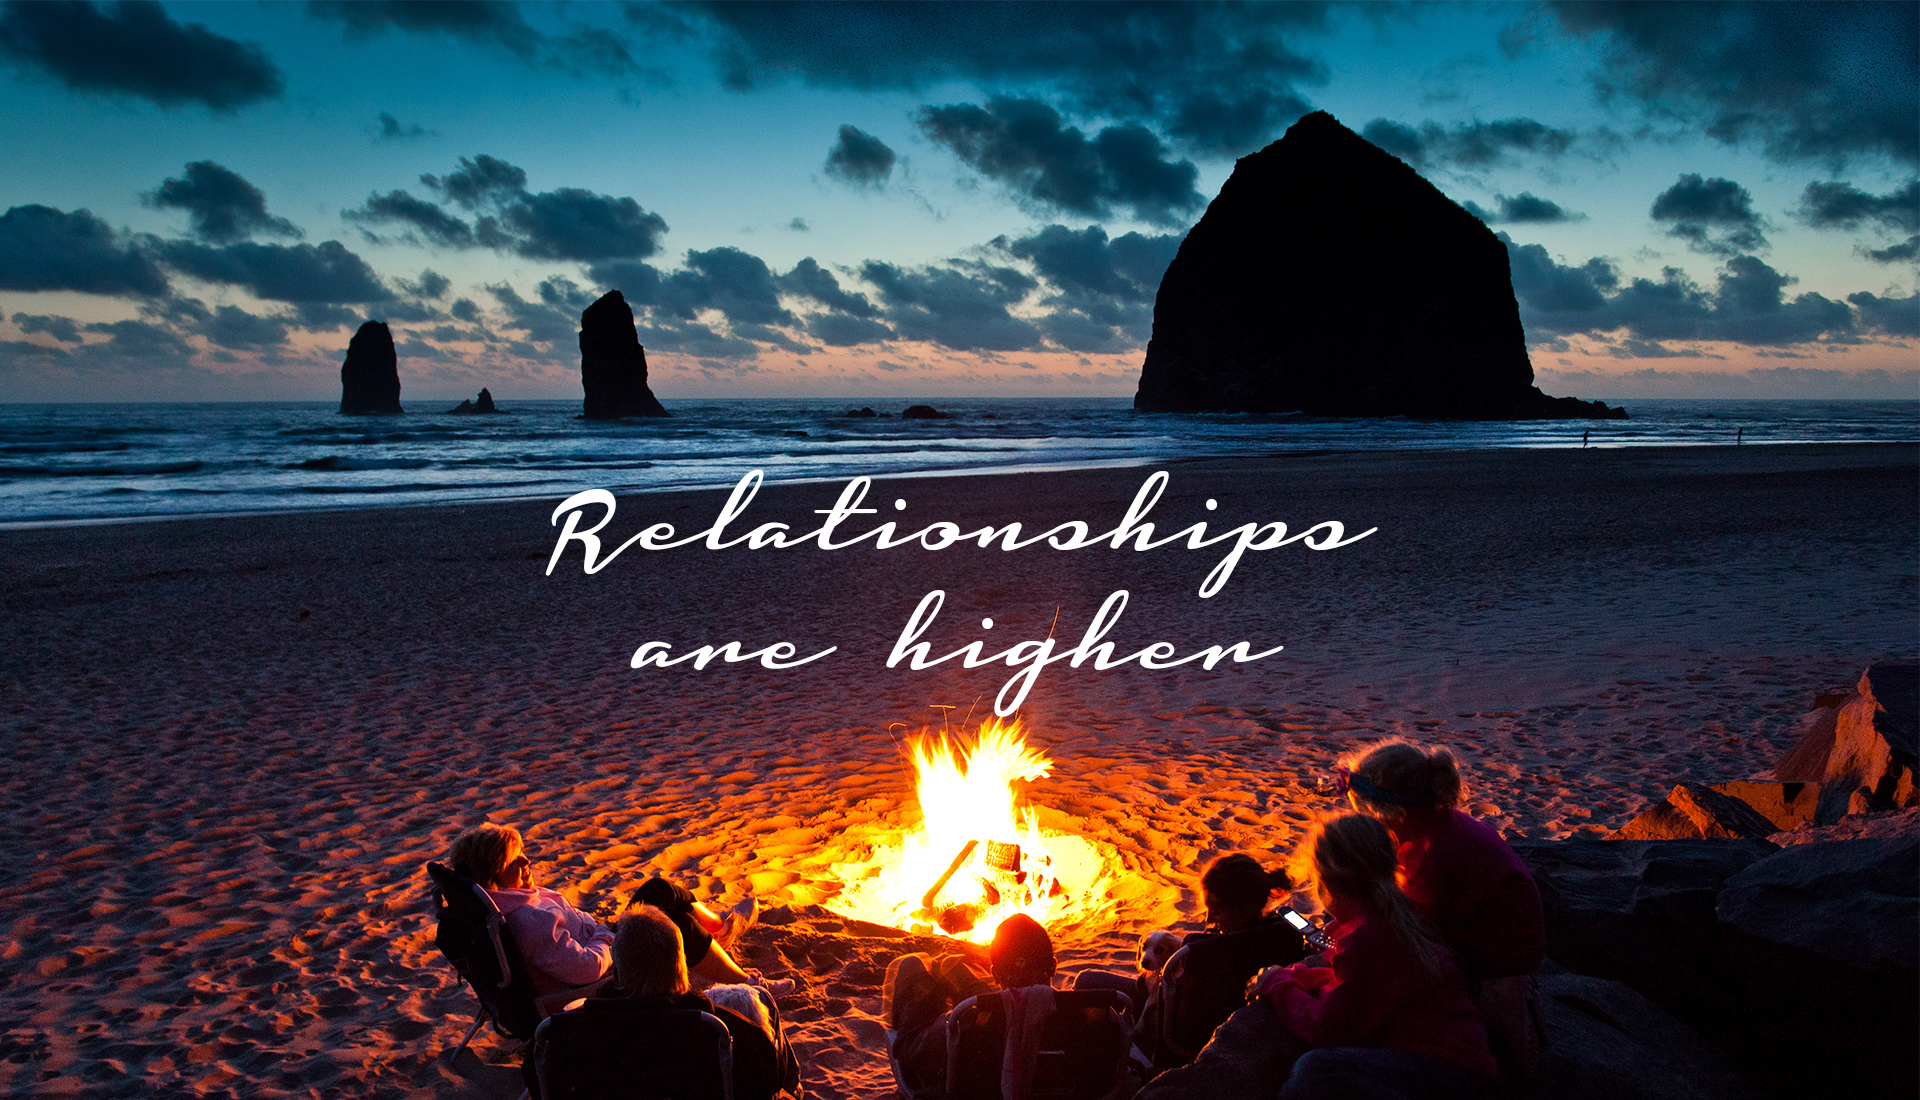 Relationships are higher